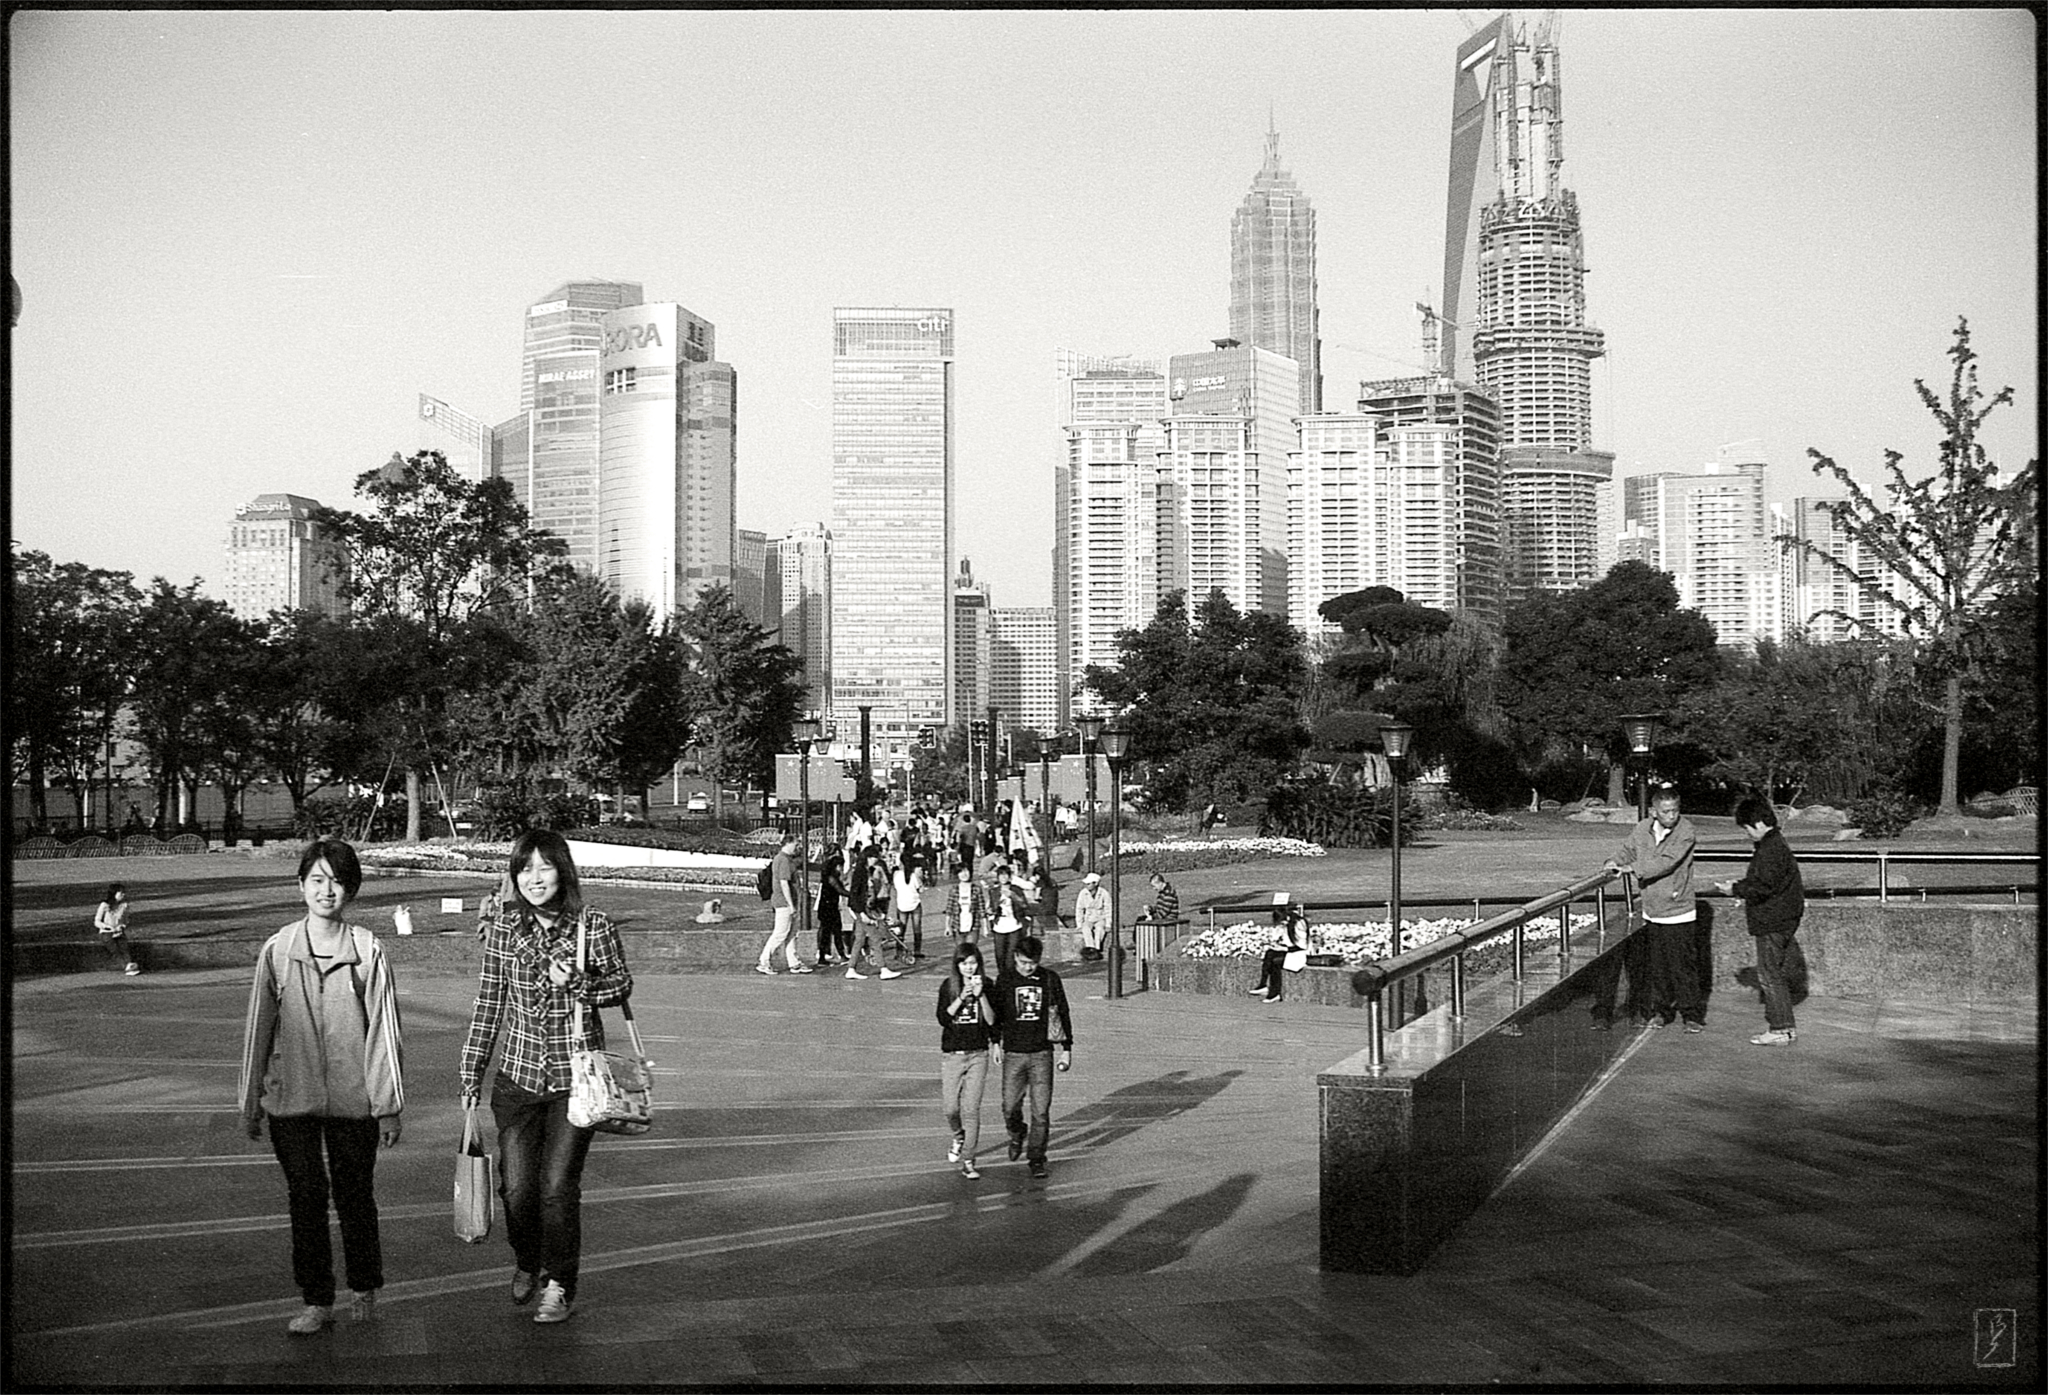 Gucheng park borrows the skyline of Pudong as scenery, but it's not possible to walk there from the park. The wide Huangpu river is between the two.